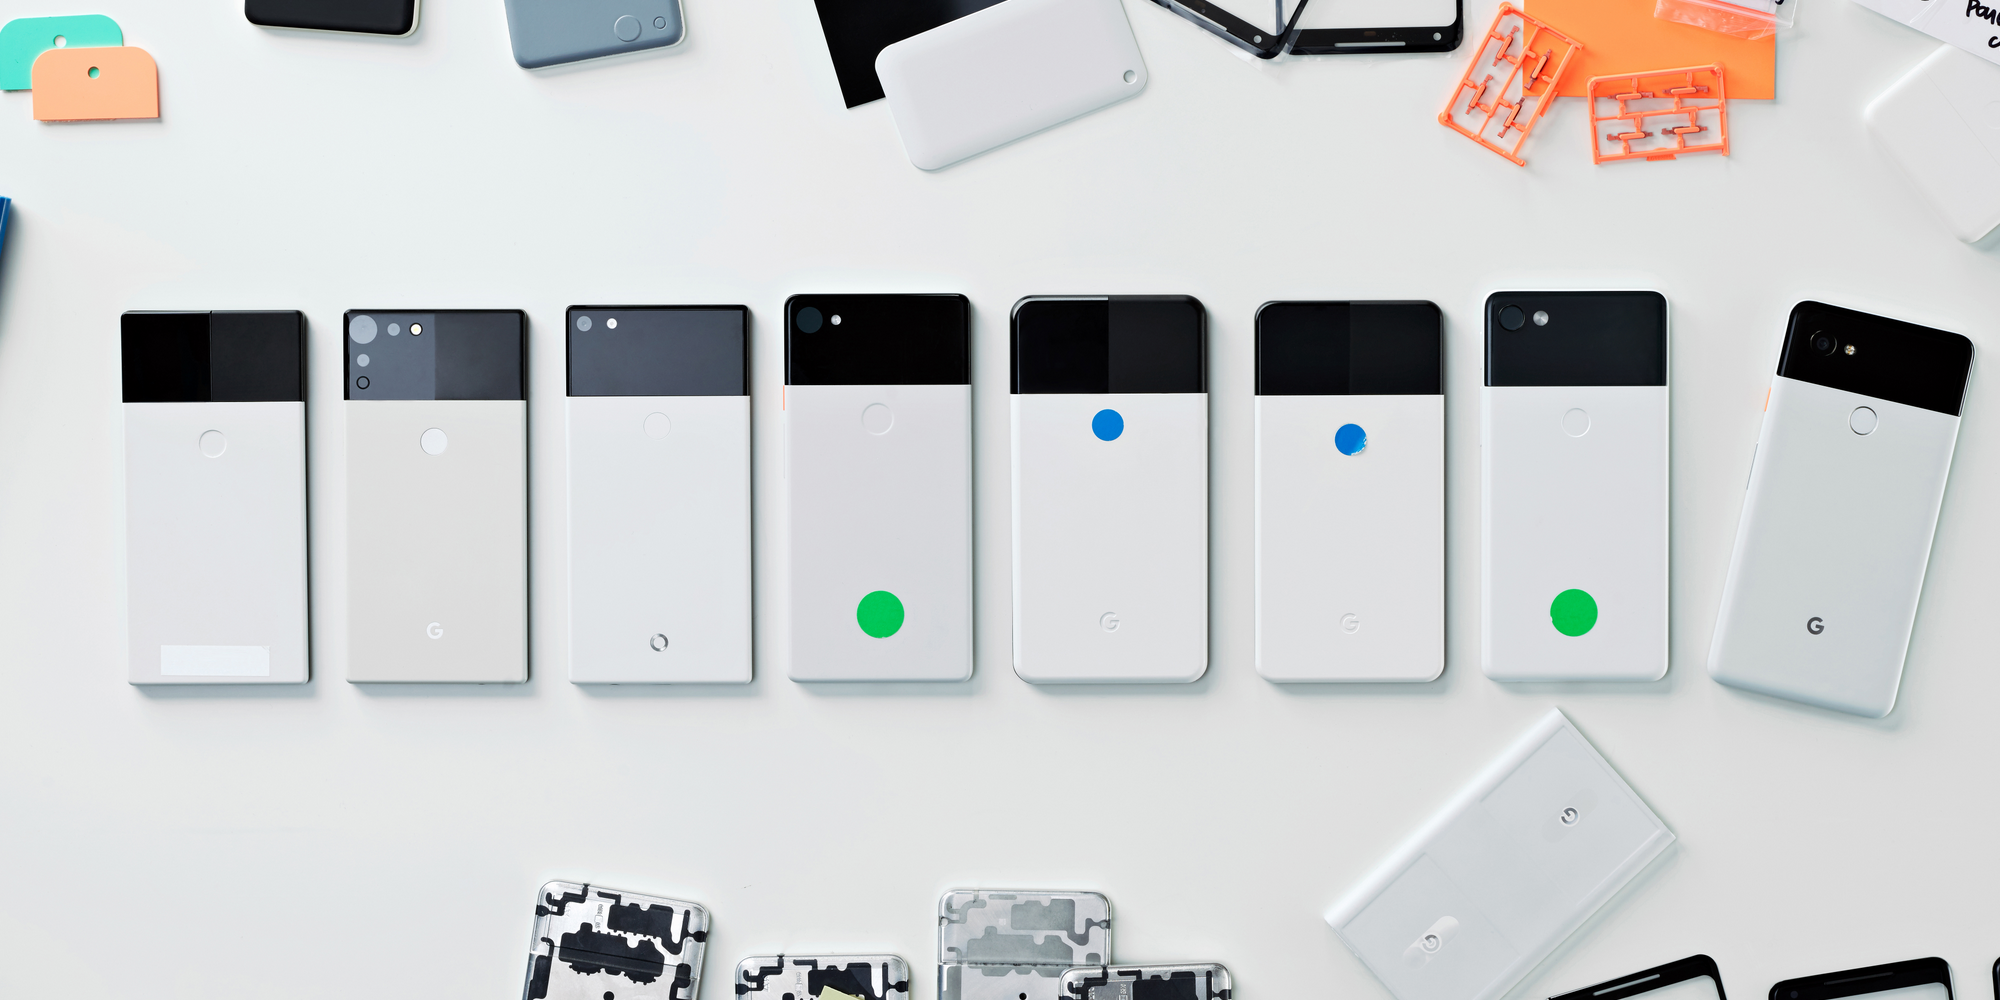 Google S Hardware Design Lead Shares Images Of Early Pixel 2 And